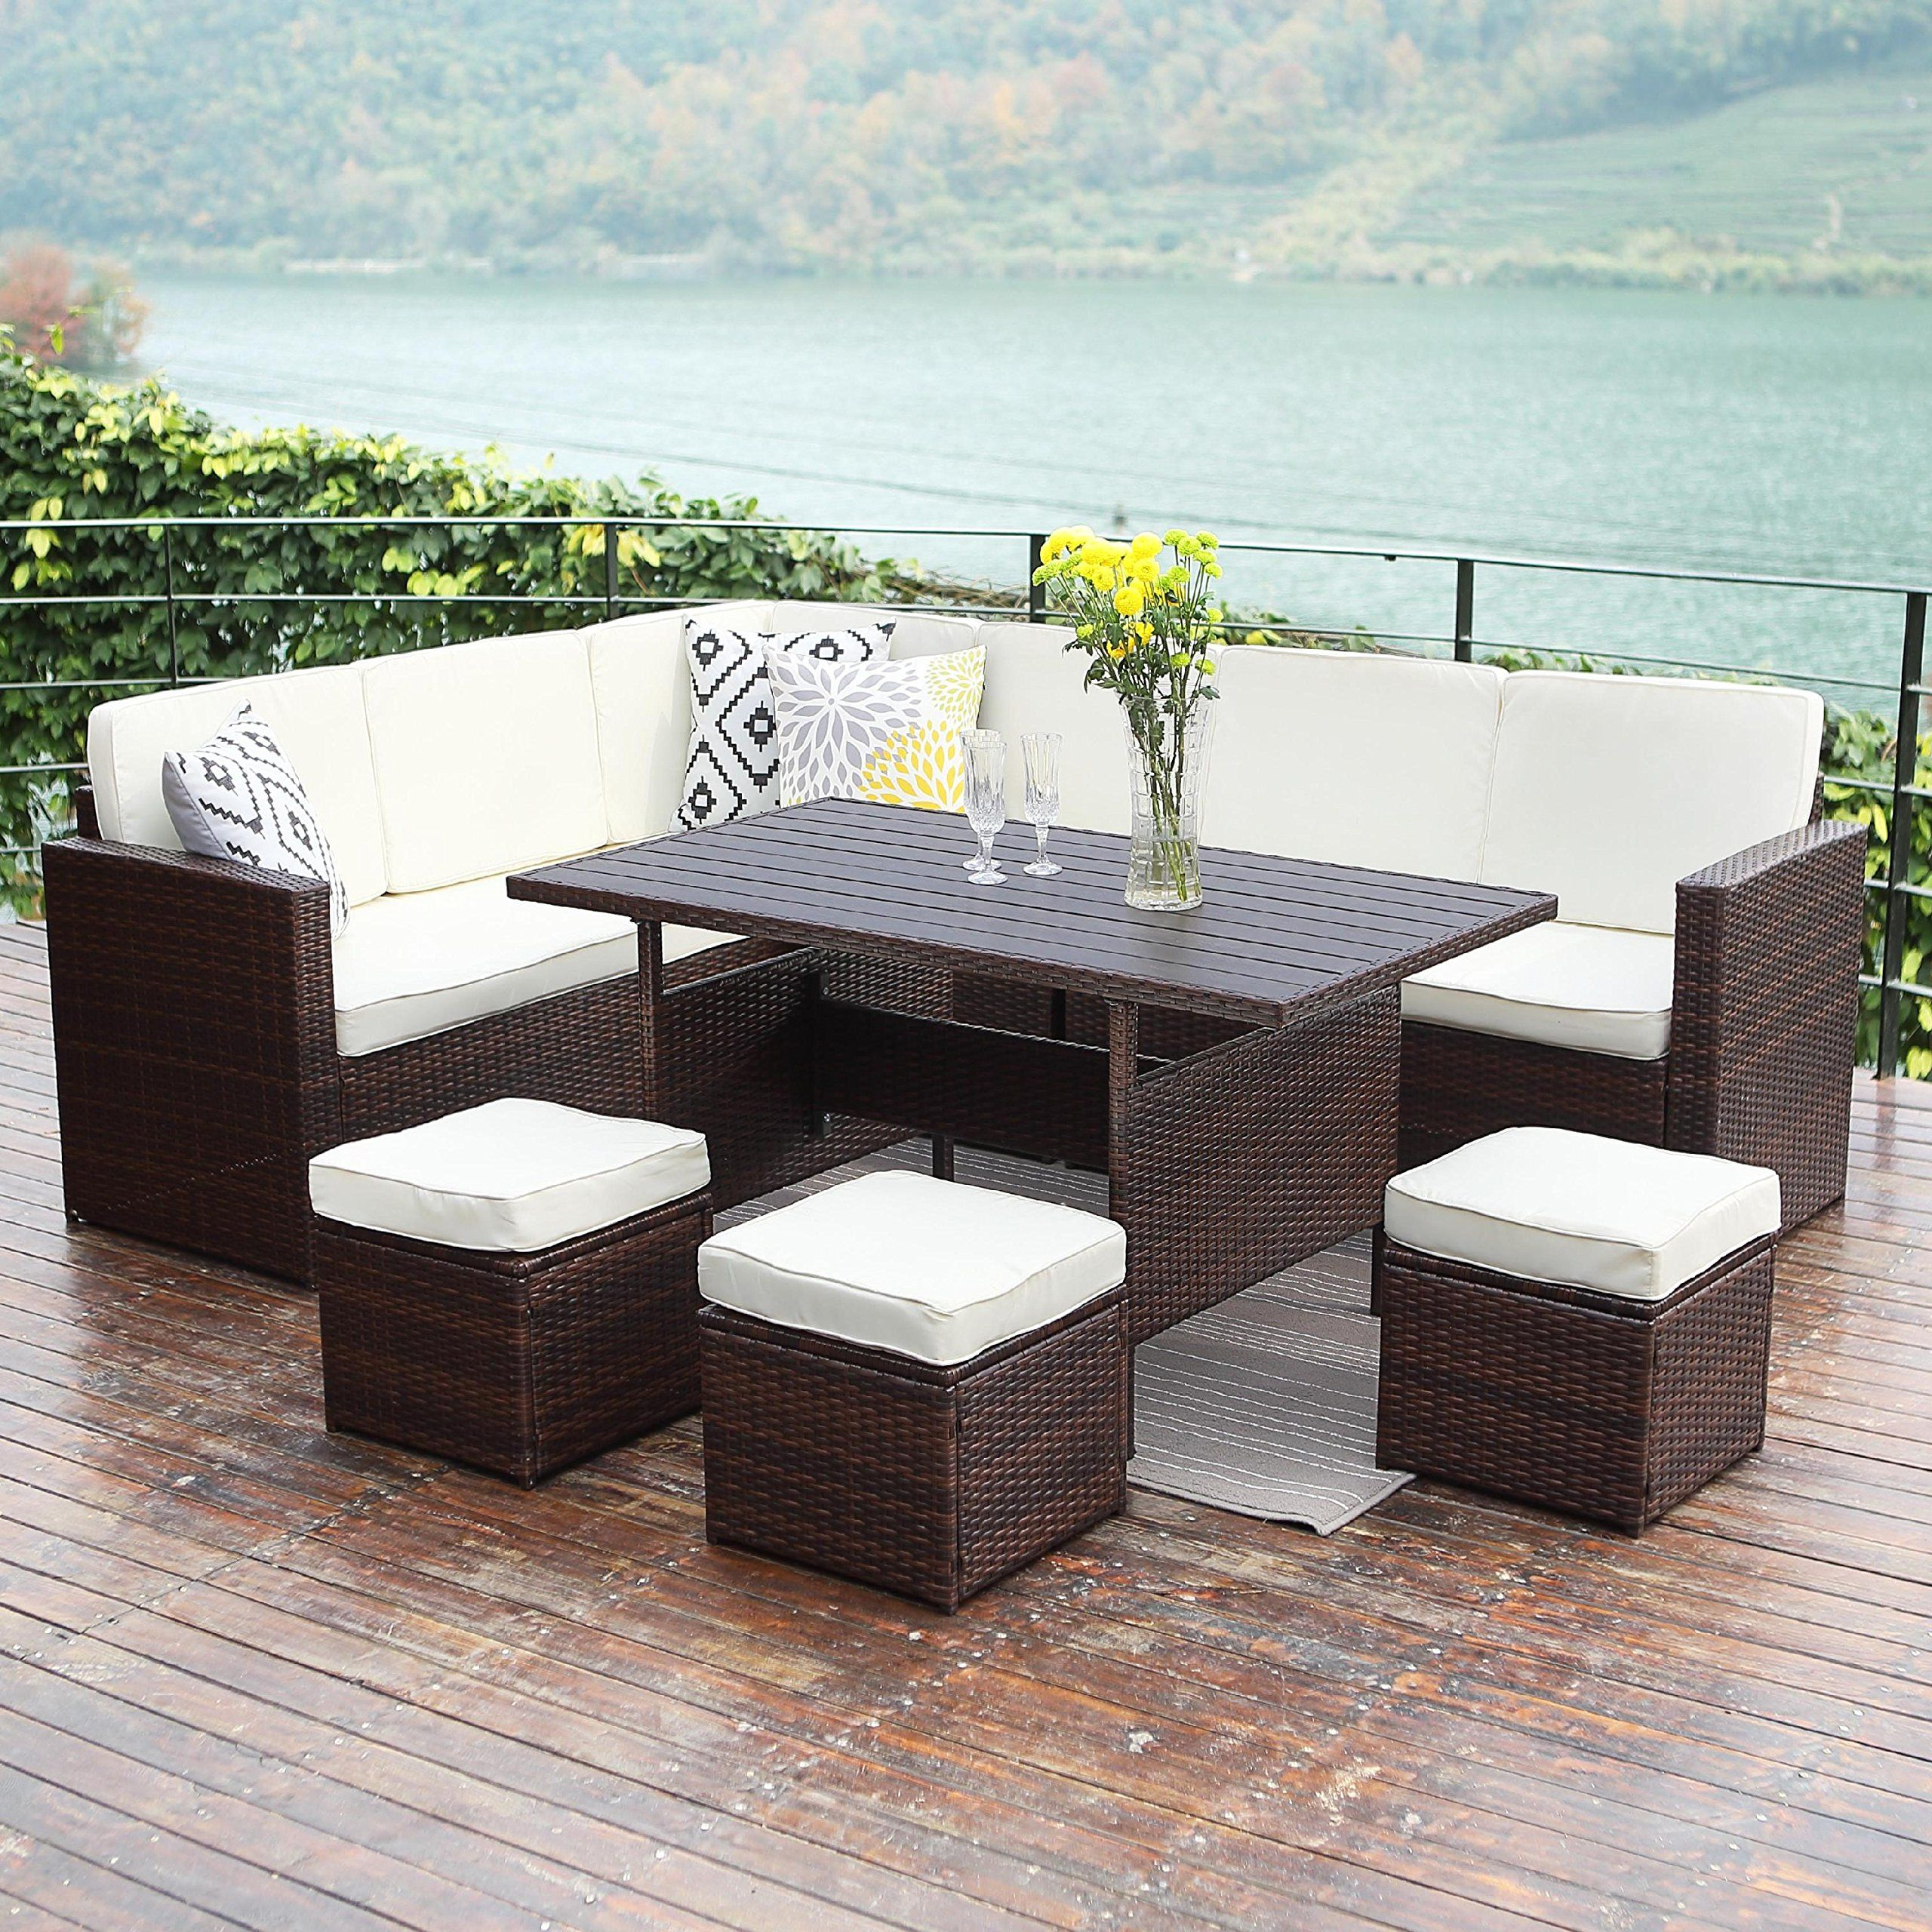 10pcs Patio Sectional Furniture Setwisteria Lane Outdoor